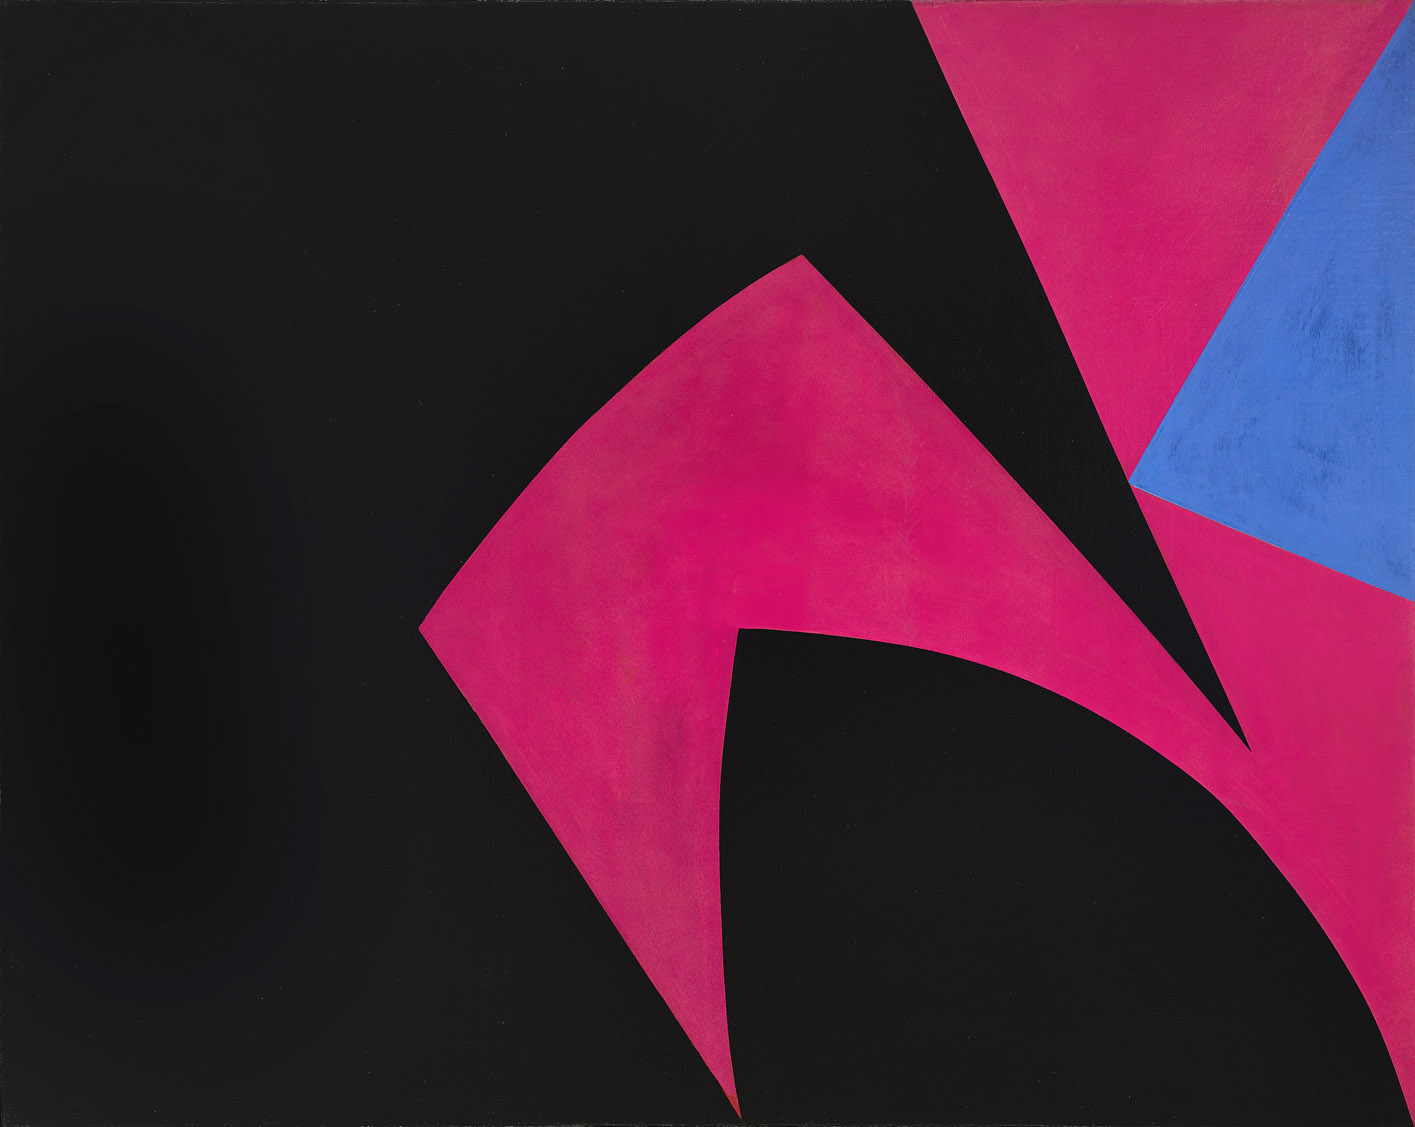 Lorser Feitelson (1898 - 1978)   Magical Space Forms (Black, Fuchsia),  1951 oil on canvas 46 x 58 inches; 116.8 x 147.3 centimeters